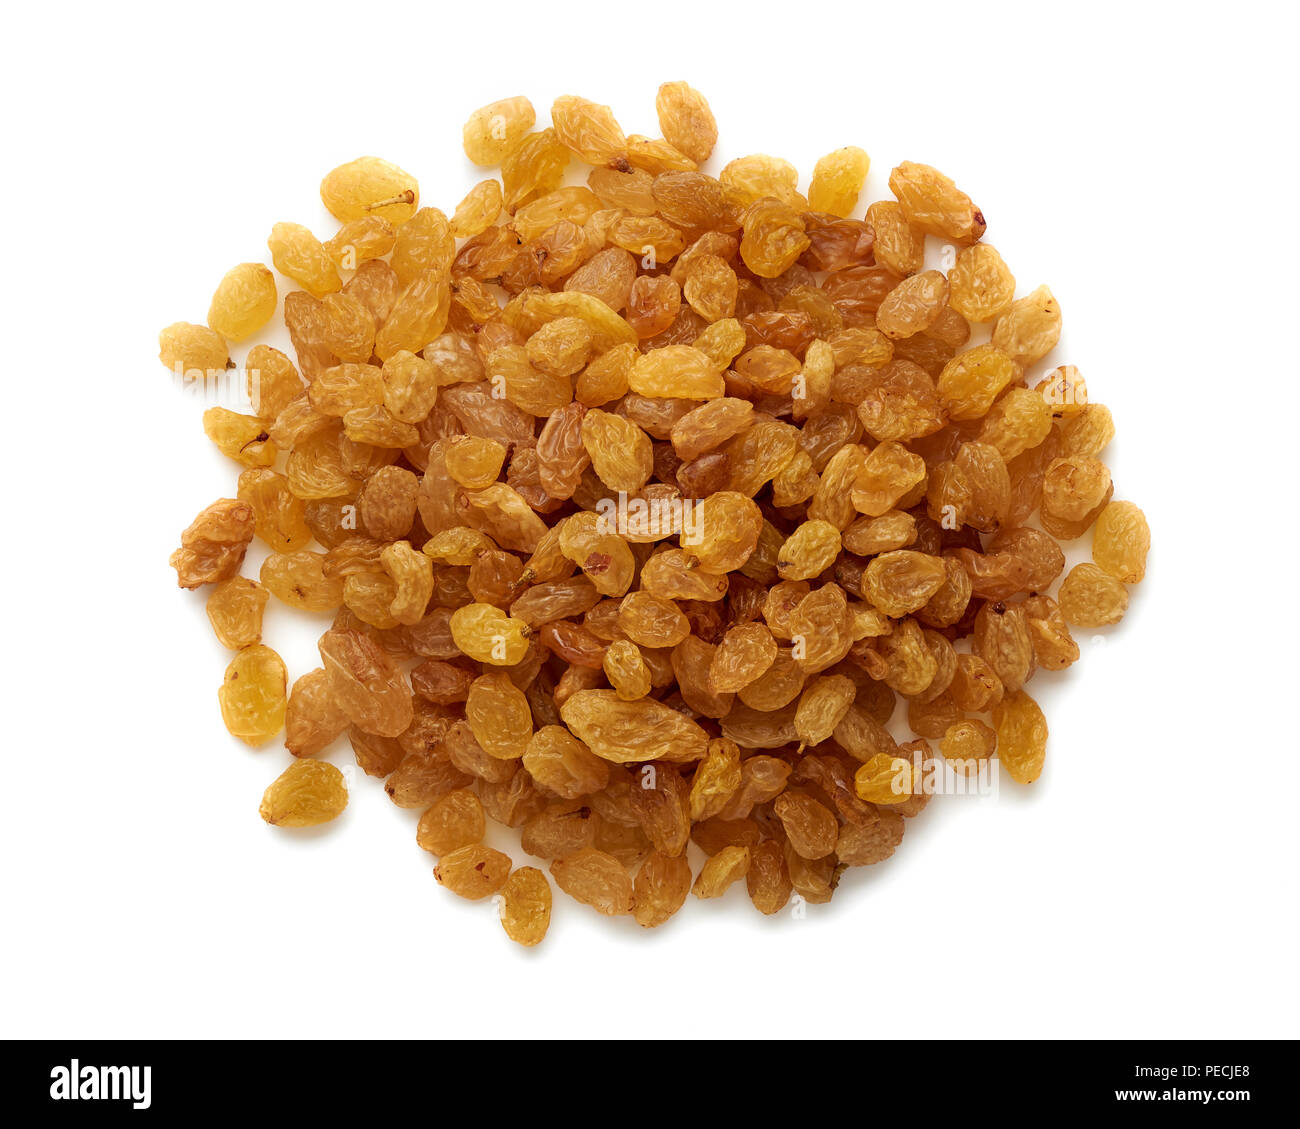 Heap of yellow raisins isolated on white background. Top view. - Stock Image